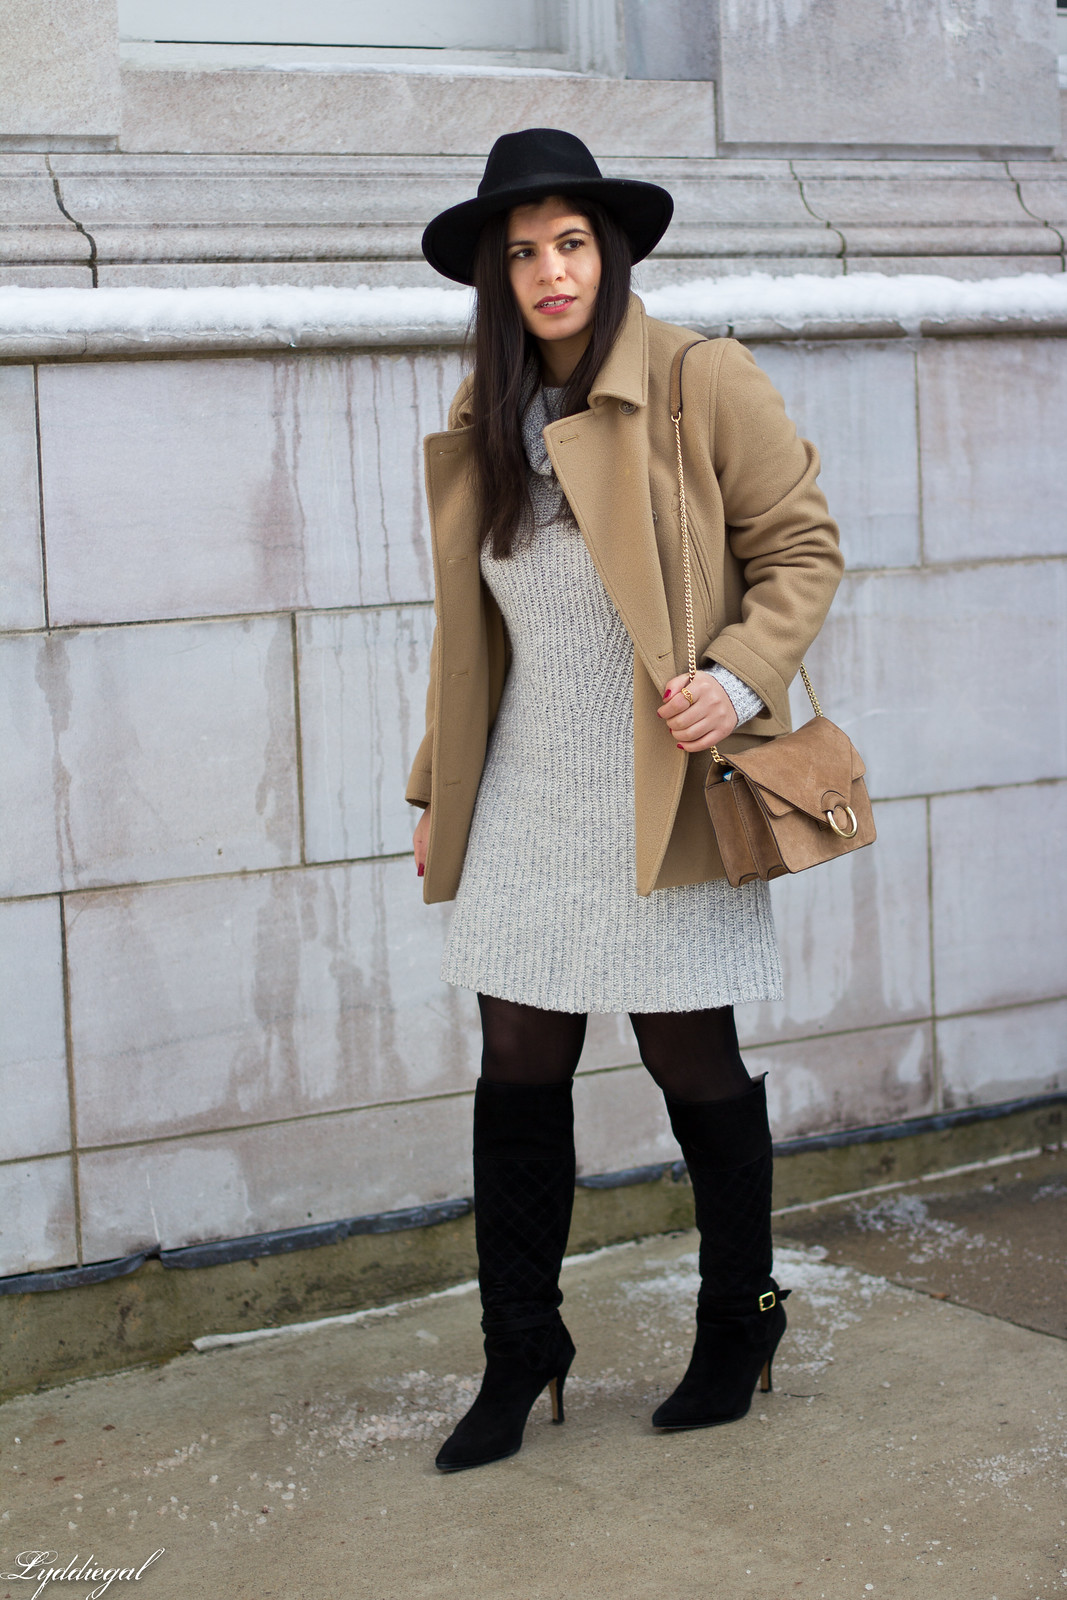 grey sweater dress, camel peacoat, black boots, winter outfit-1.jpg